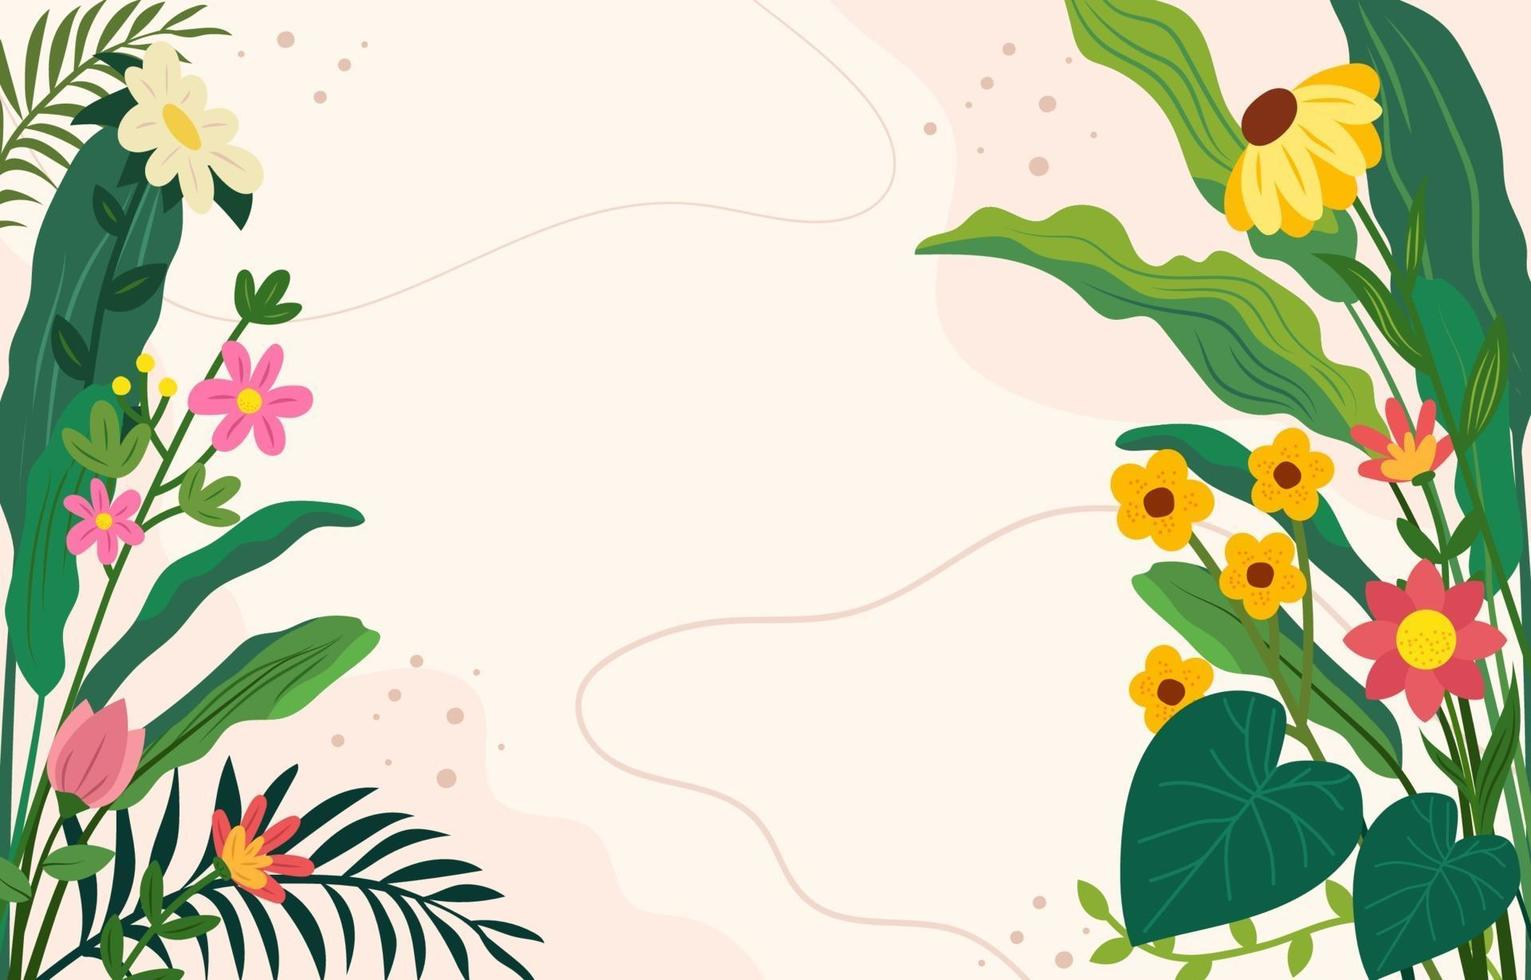 Flower and Foliage background vector